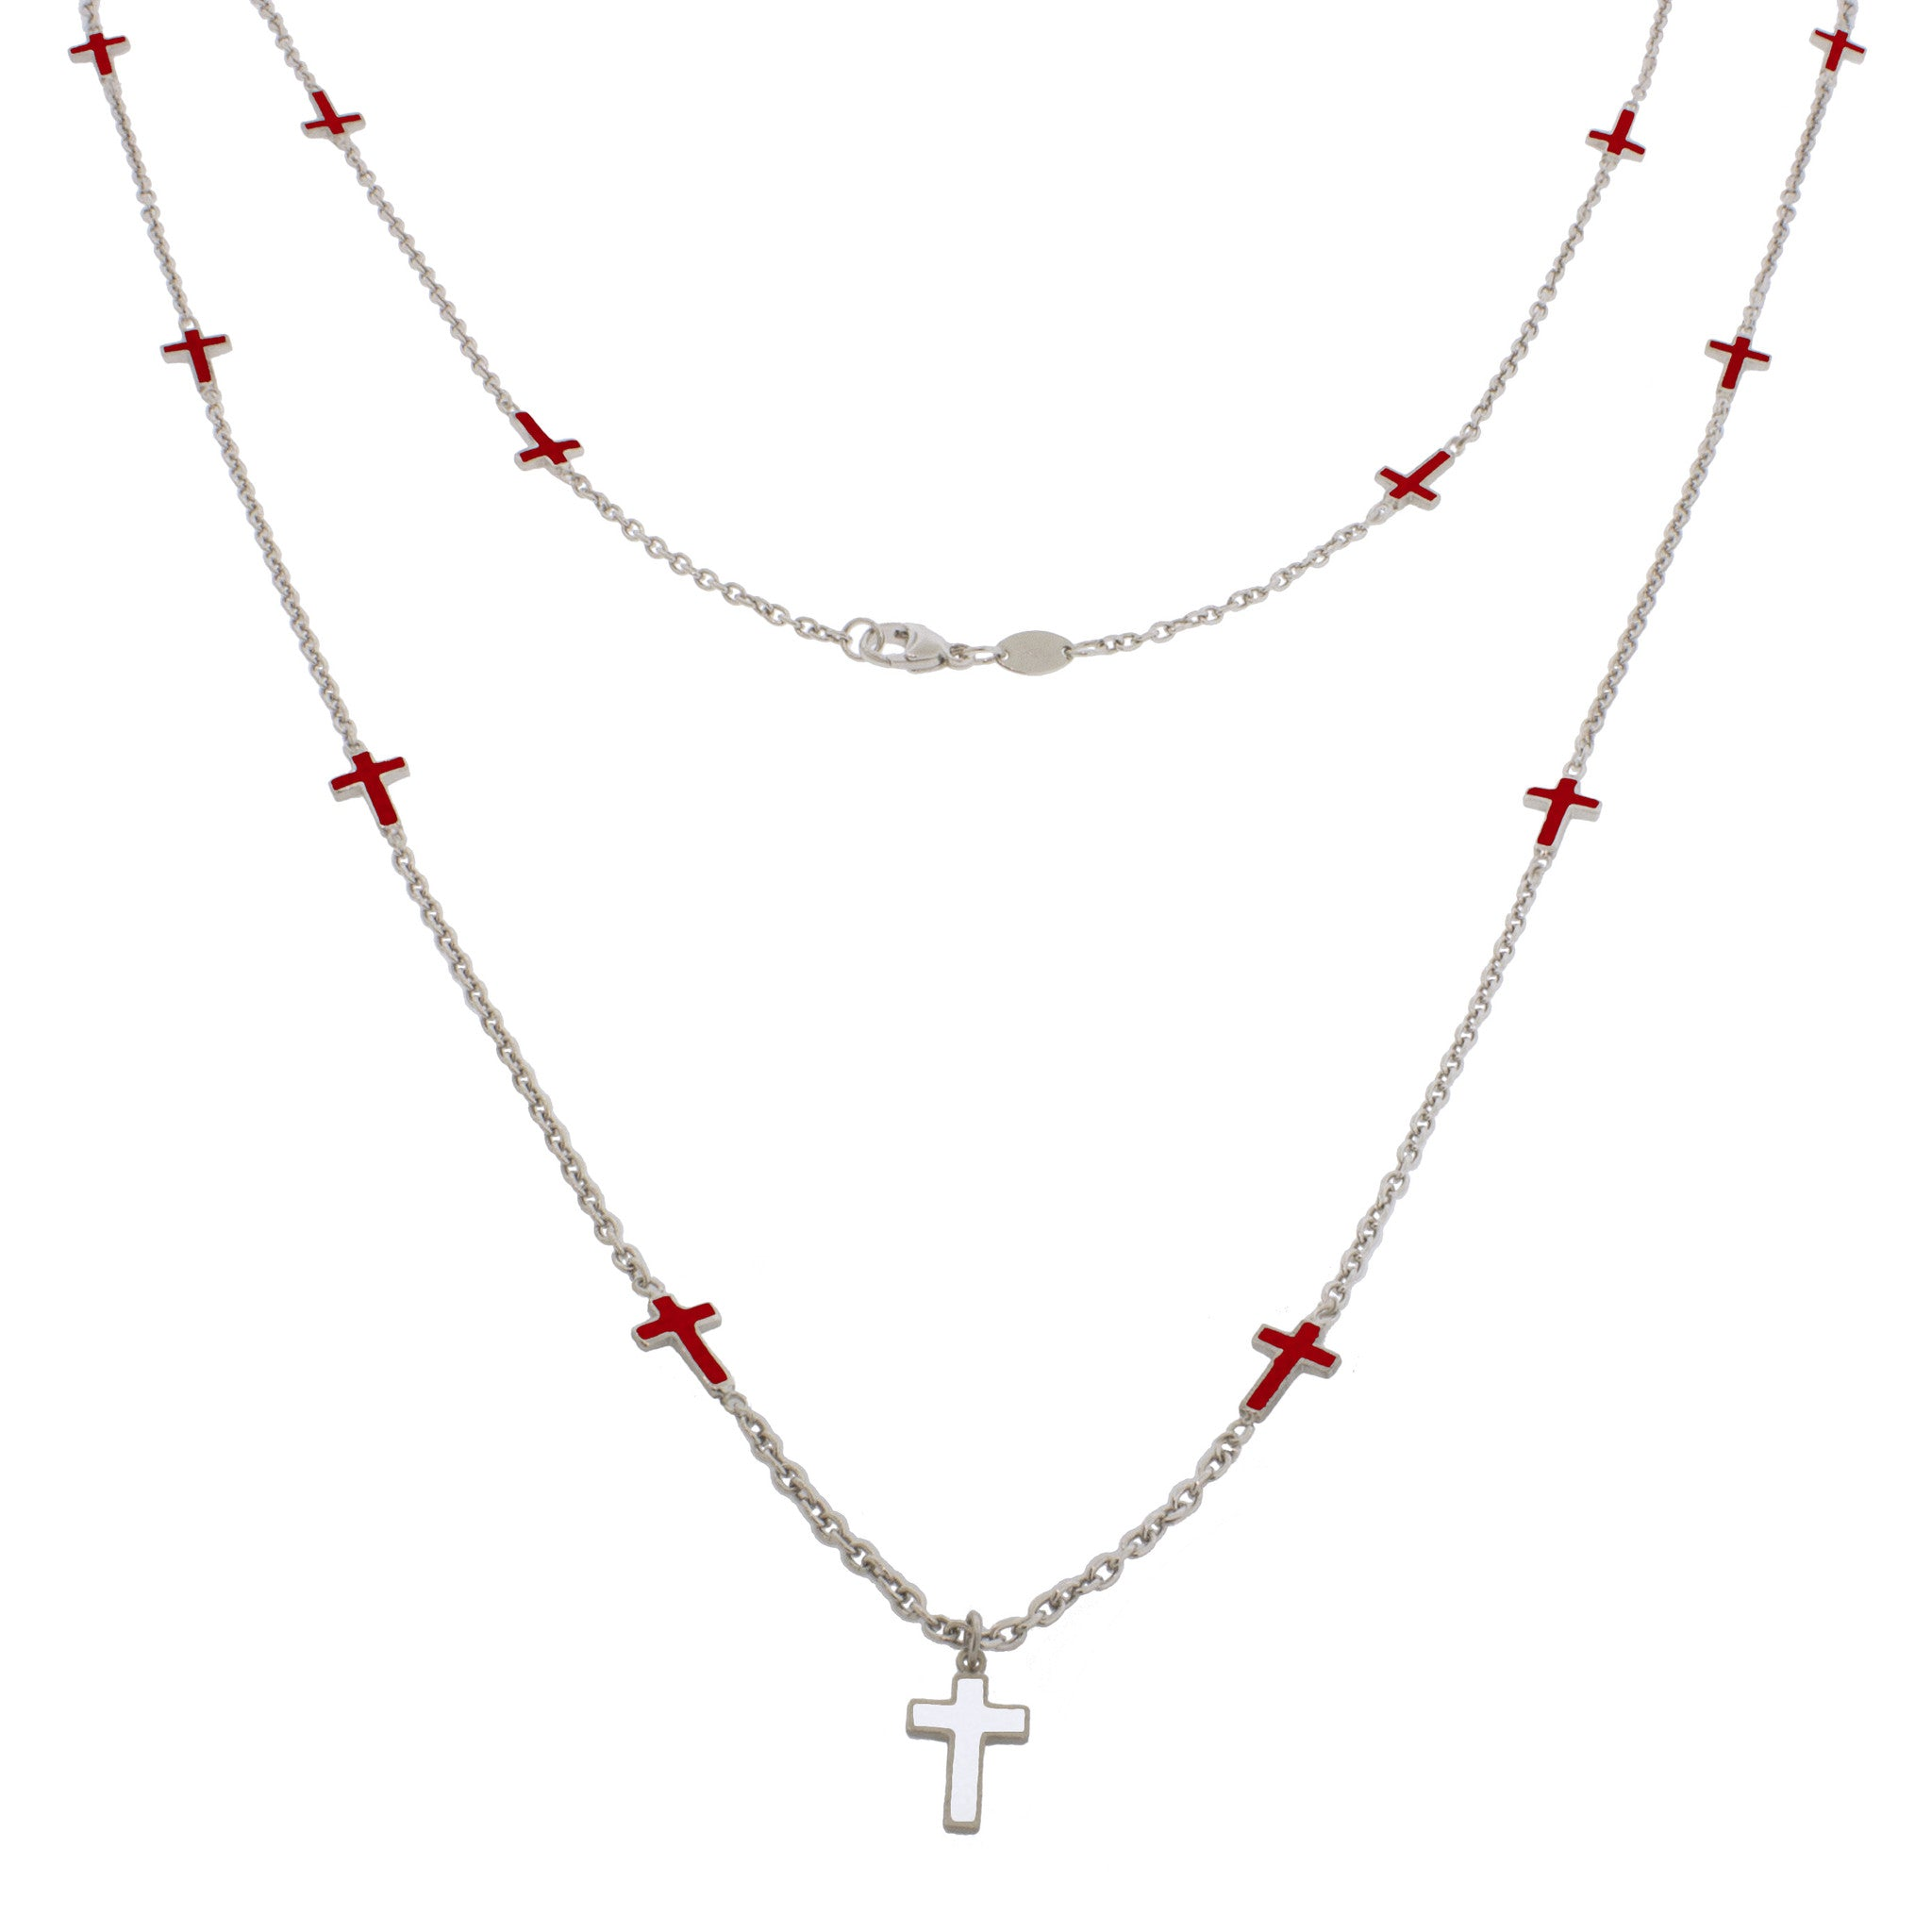 36-inch Faith Sterling Silver Necklace - Red